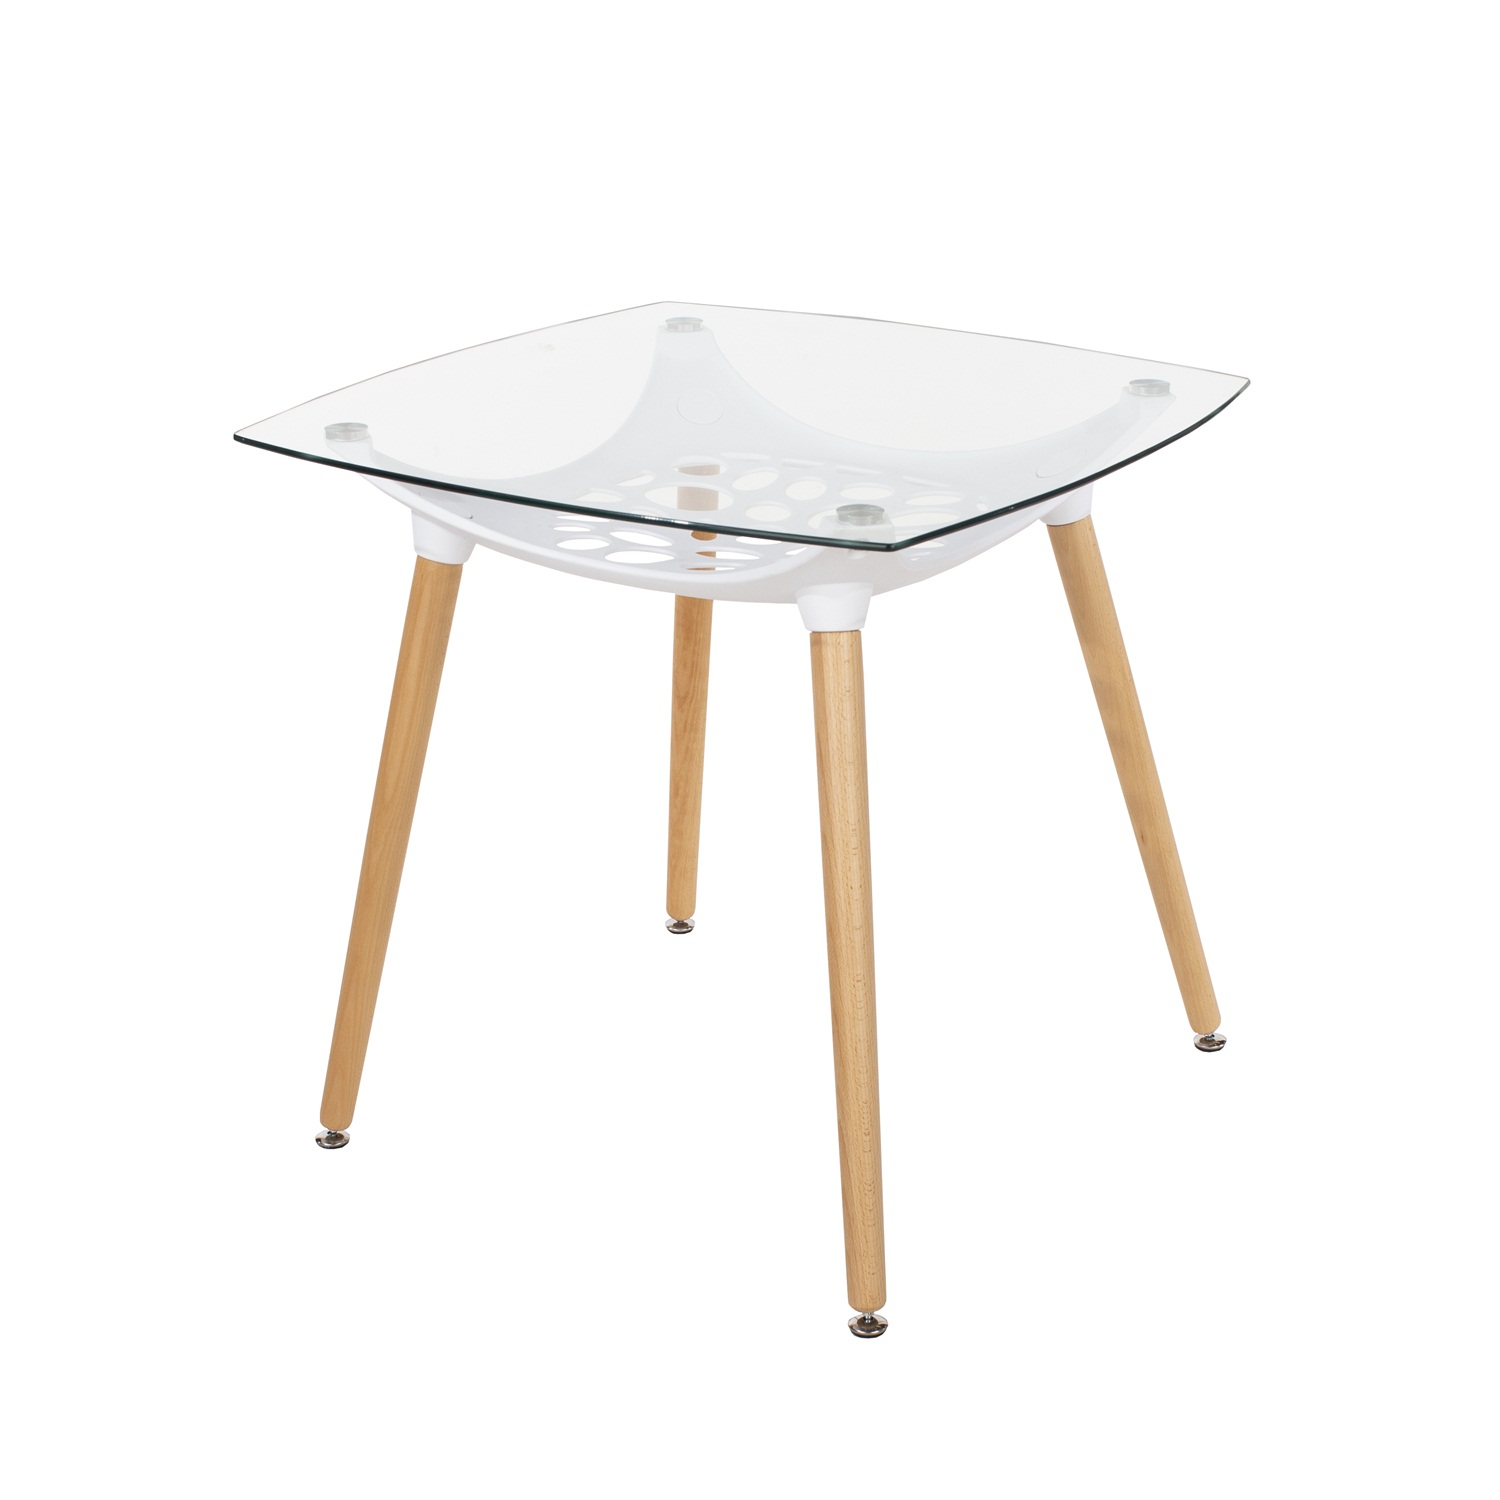 square clear glass top table with white plastic underframe & wooden legs